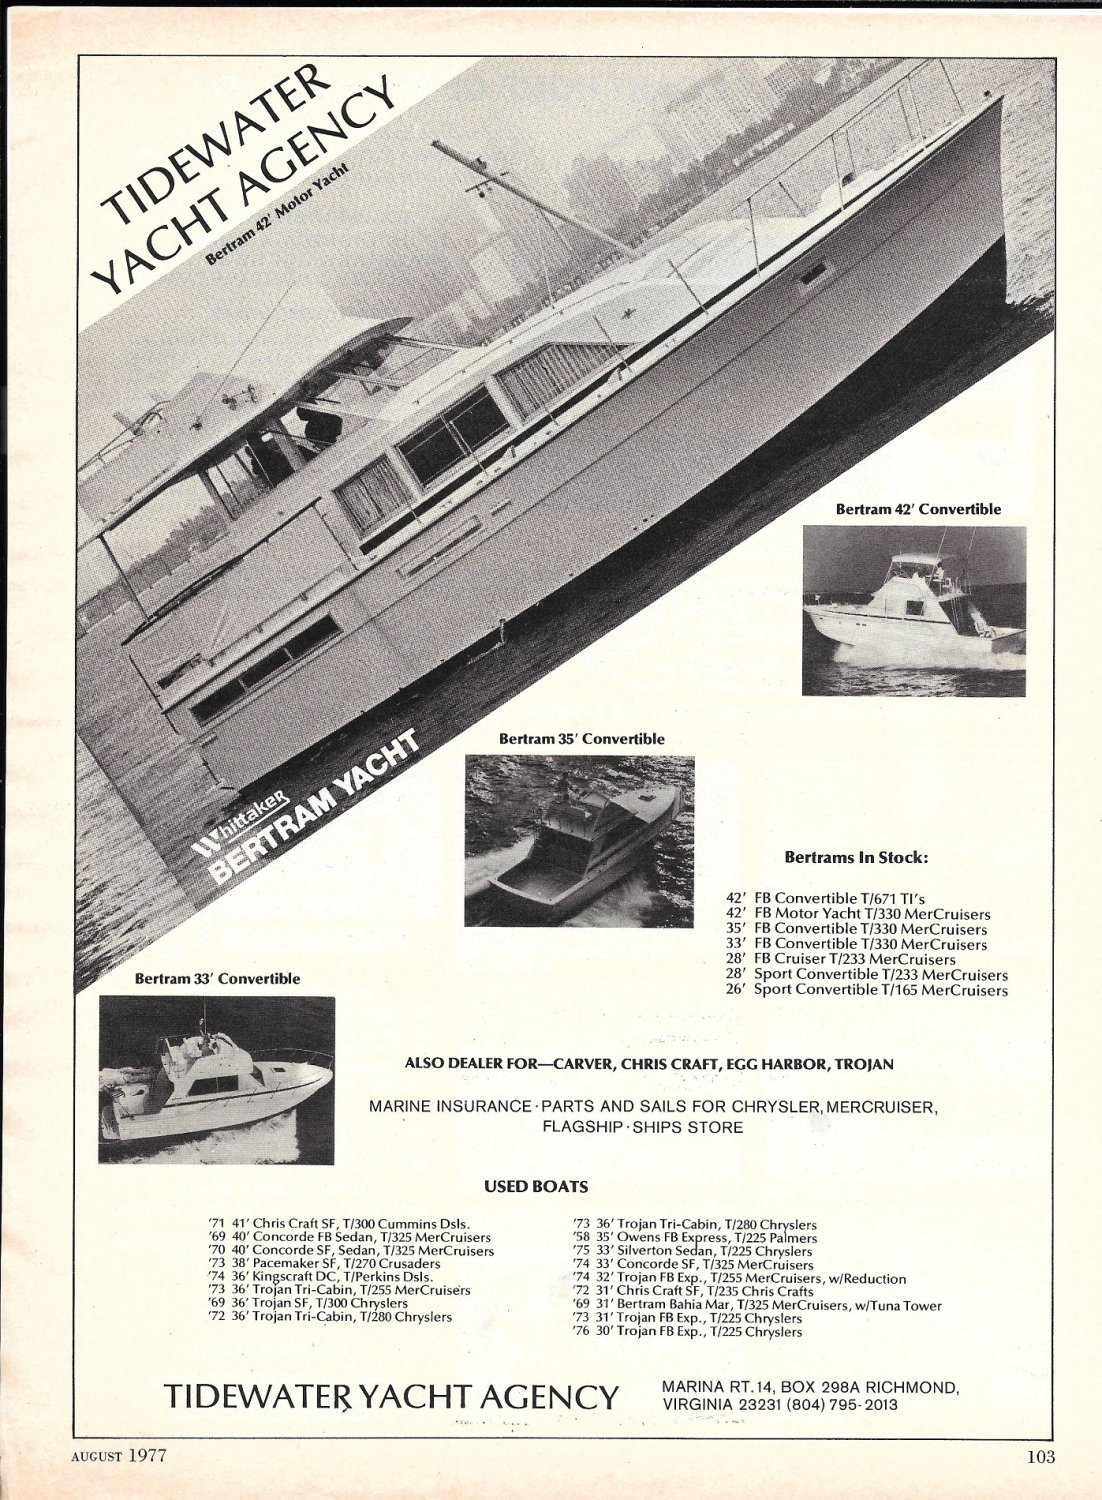 1977 Bertram Yachts Featured in Tidewater Yacht Agency Ad- 42- 33- 35 & 42' Models